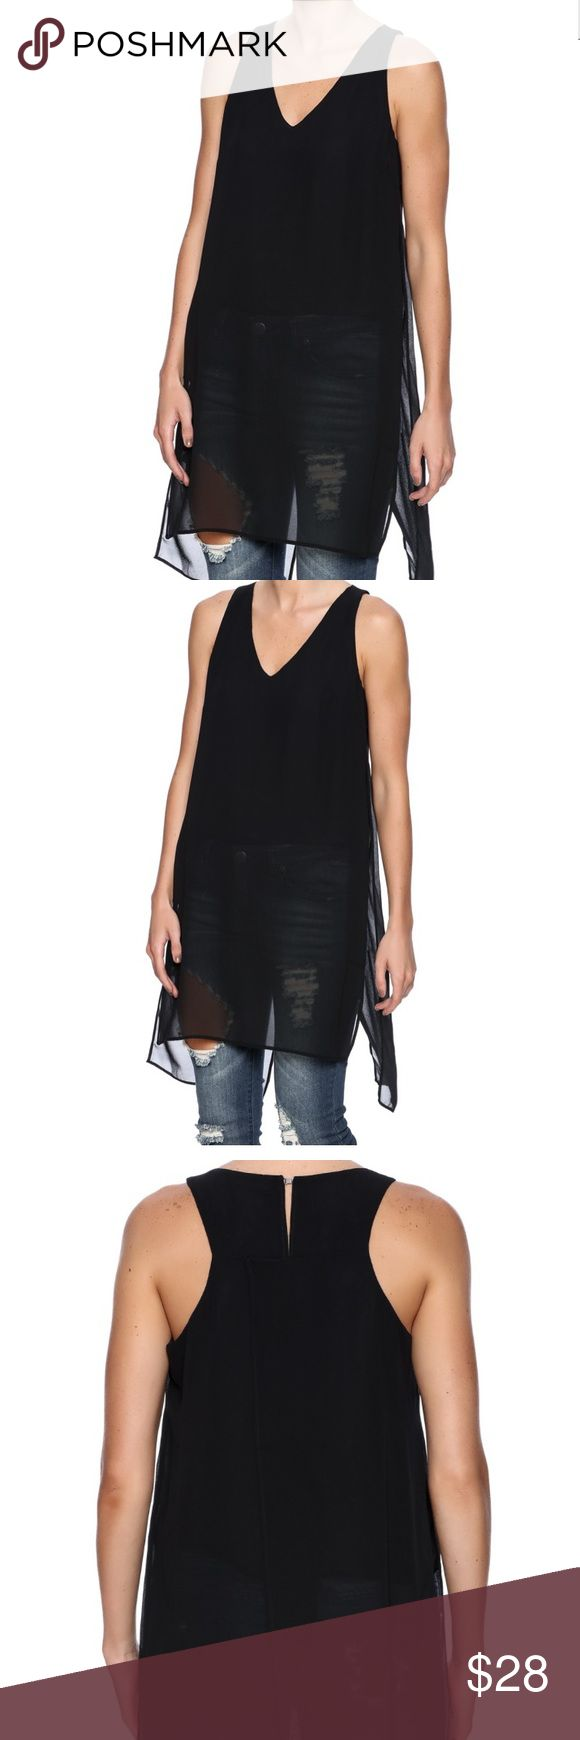 NWTs Dex Sheer Overlay Top NWTs Dex Sheer Overlay V Neck Top with Lining to the waist. Tops